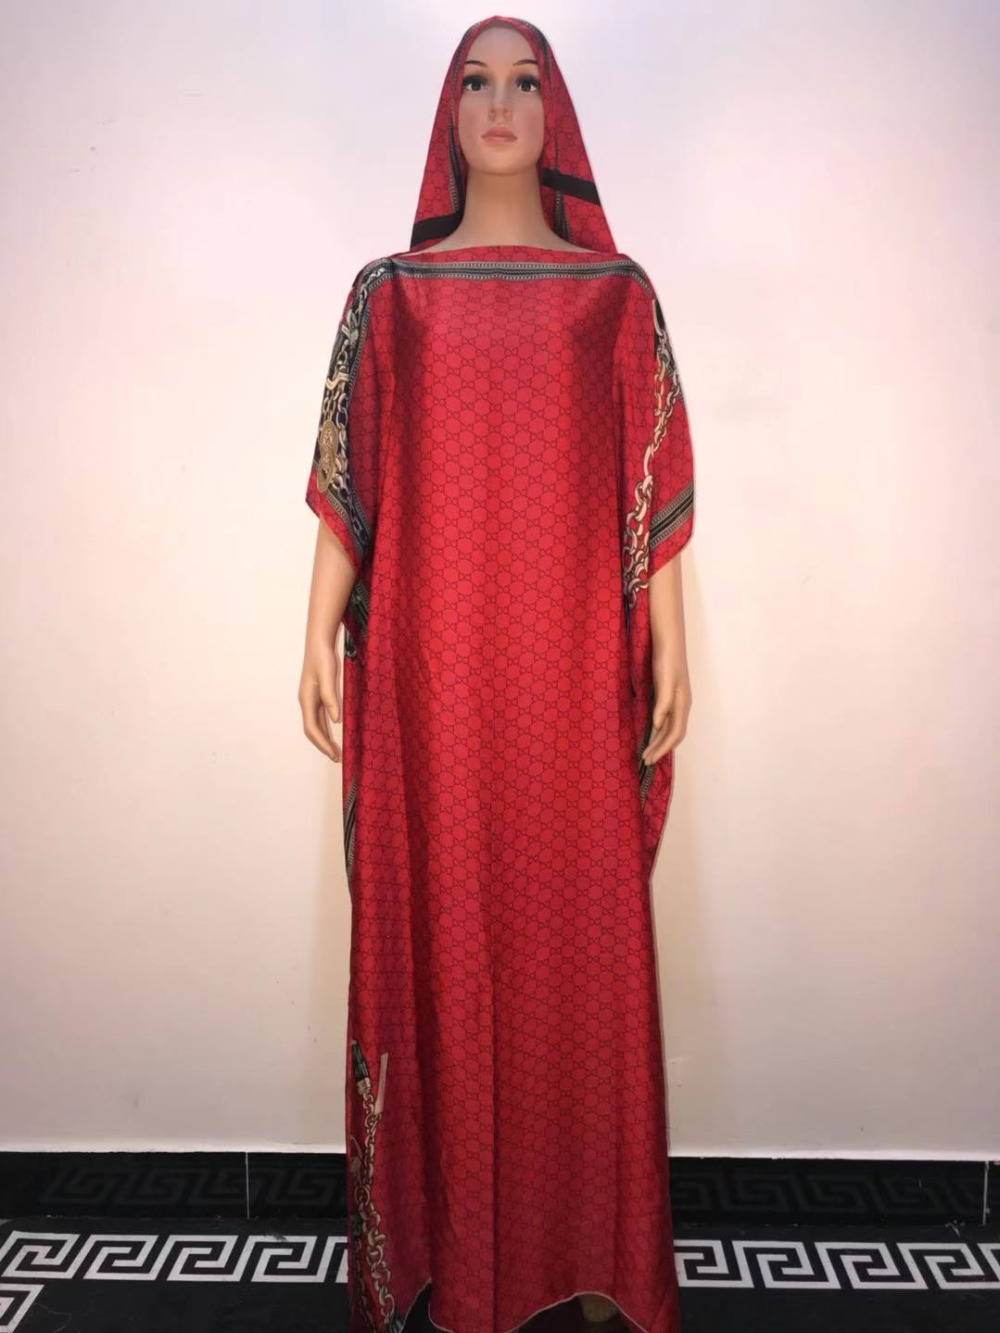 Hot Sale 2019 Summer Muslim Women Long Dress High Quality Size 145 Cm Length Fashion African Dress For Women